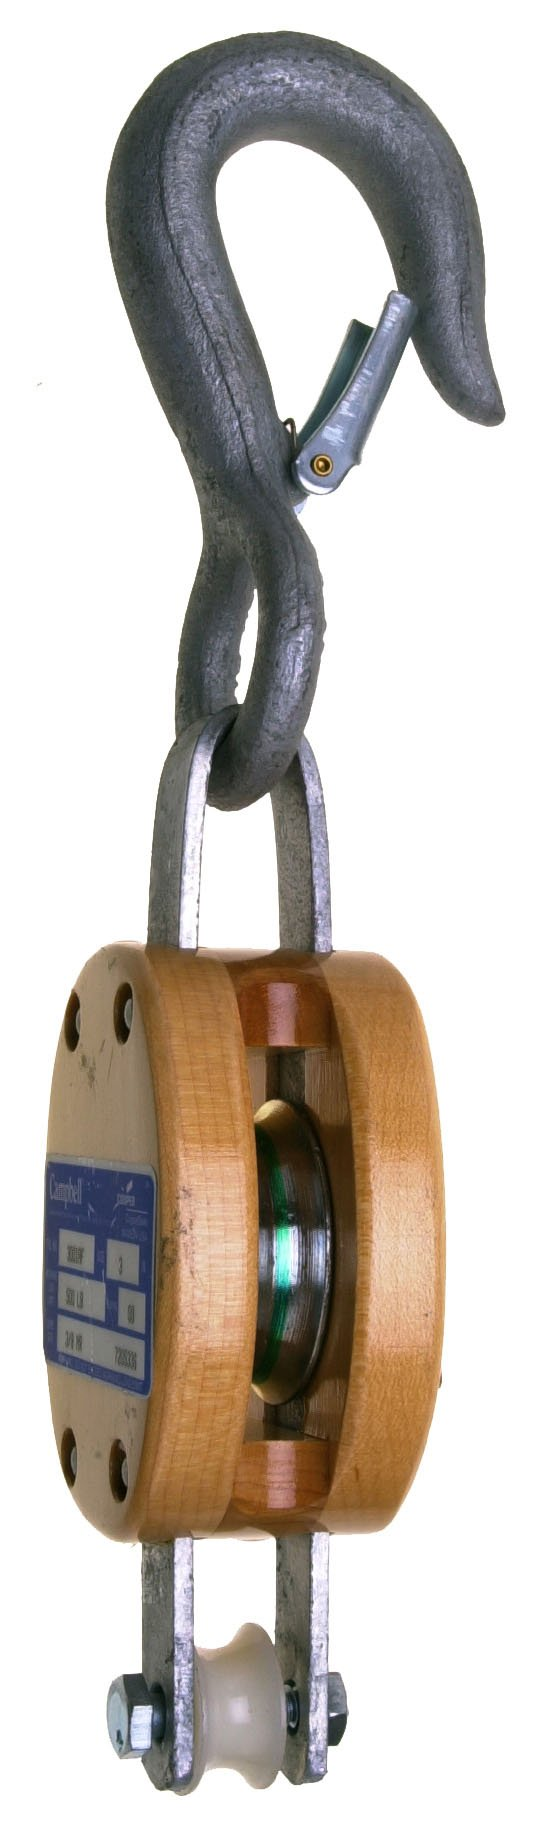 Campbell 3001AF 5'' Single Regular Wood Shell Block with AF Round Loose Hook, 1200 lbs Load Capacity, 5/8'' Rope, 1-3/4'' Sheave